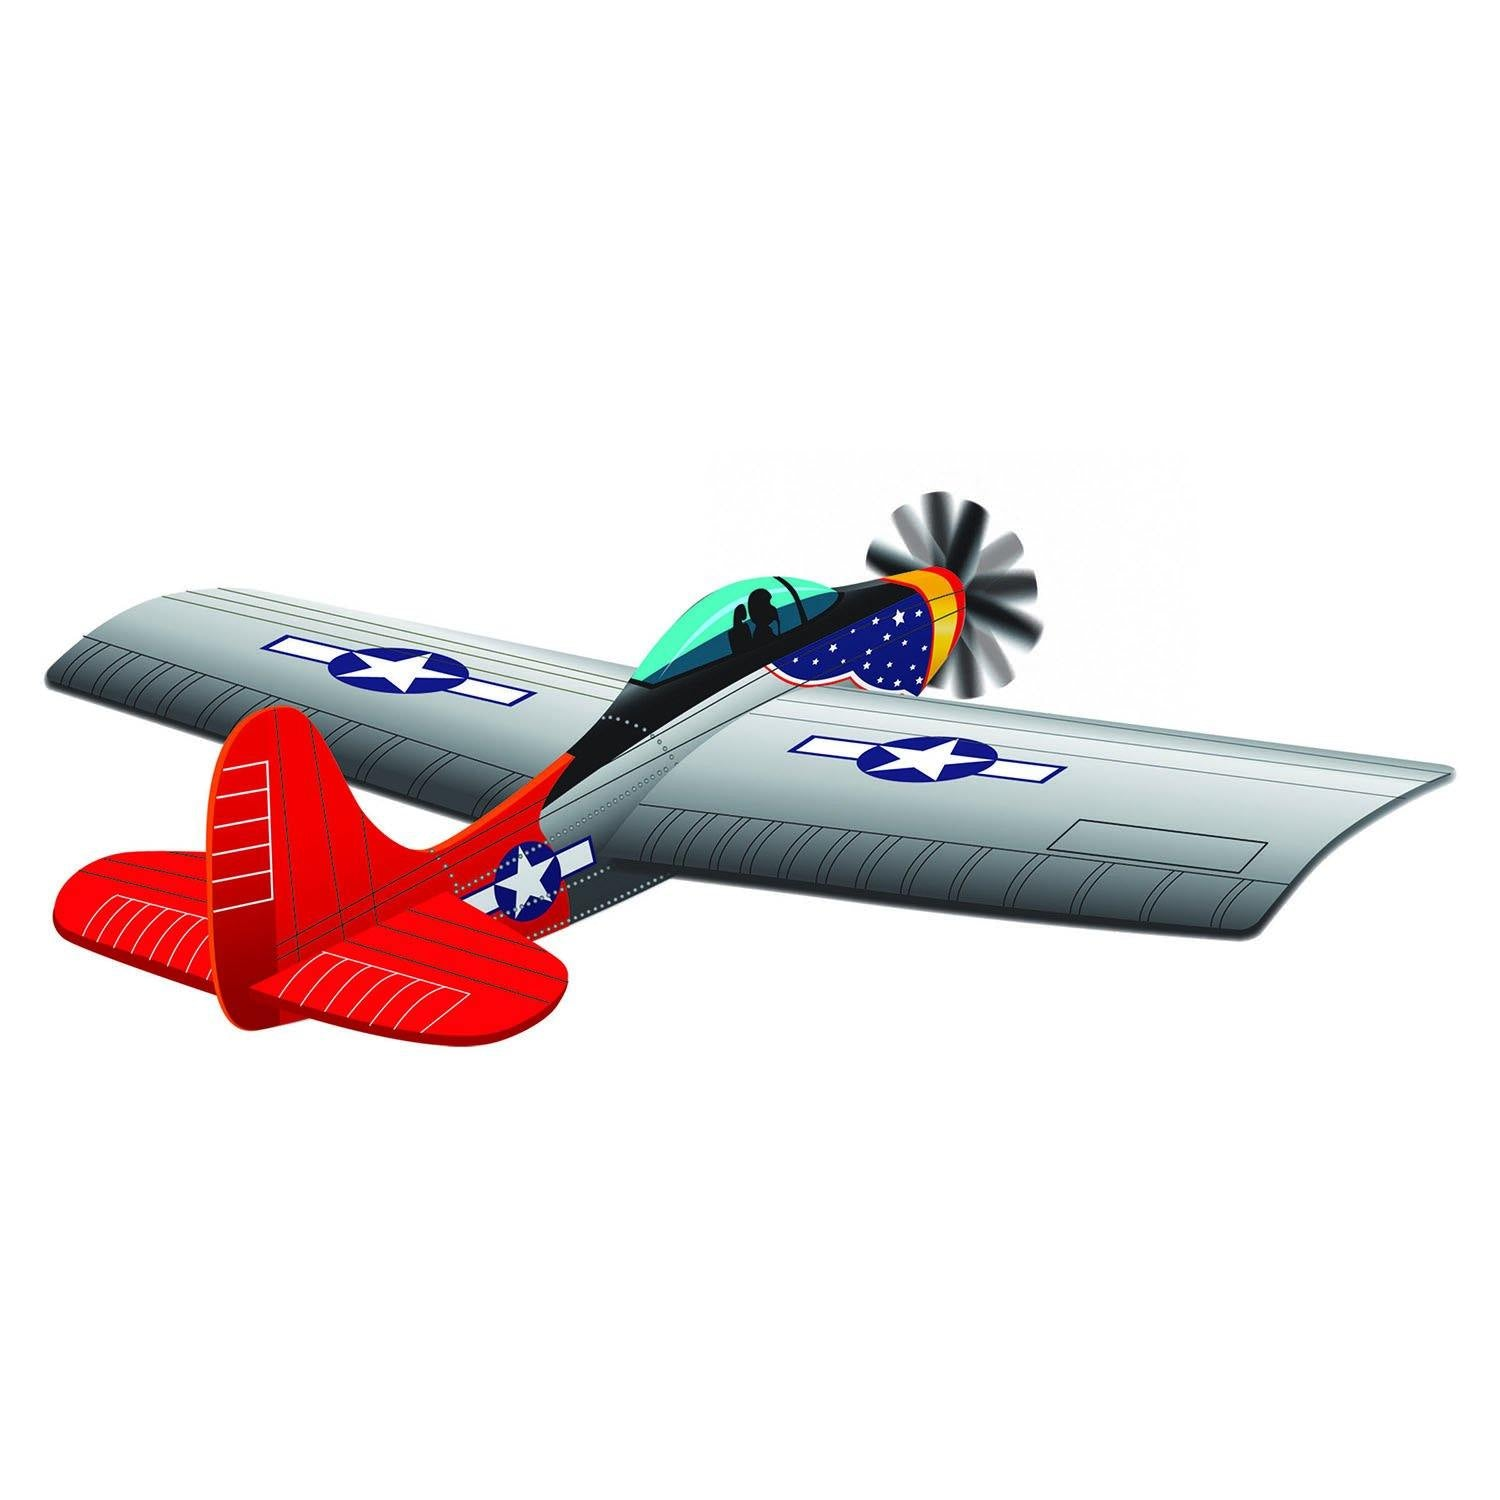 Wind Force Jet Airplane Kite - Kitty Hawk Kites Online Store